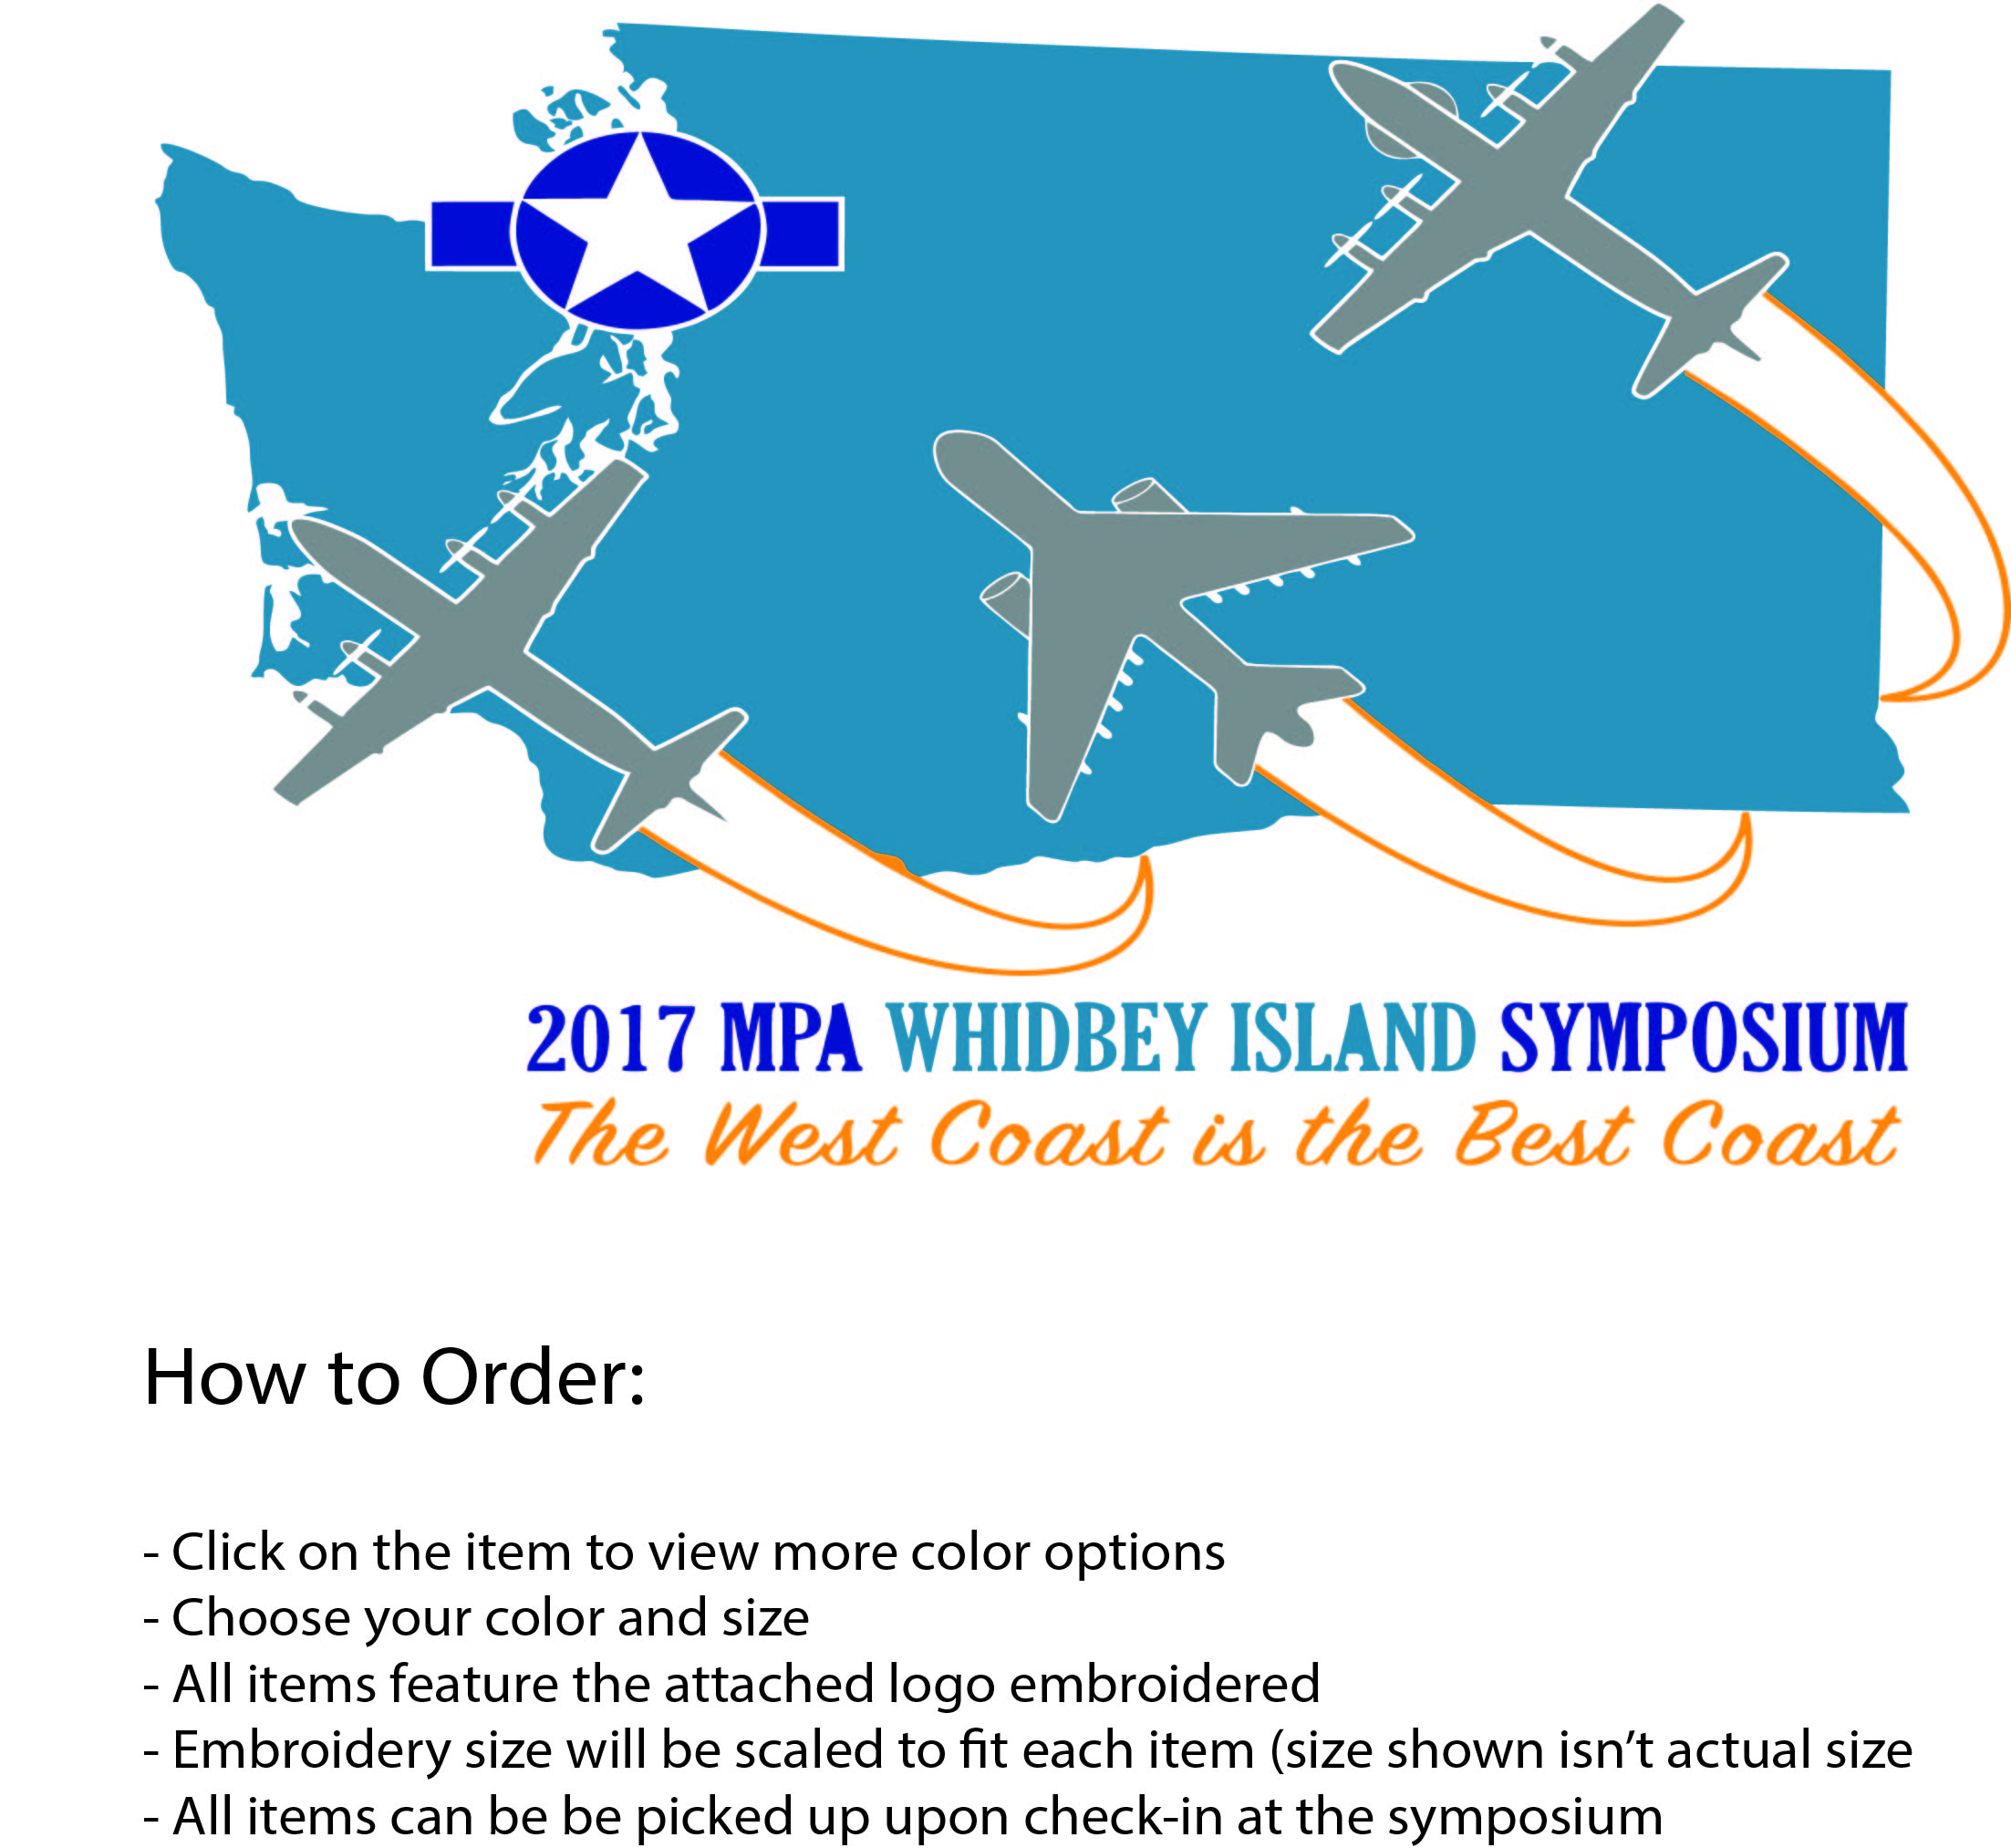 whidbey-island-website-header.jpg